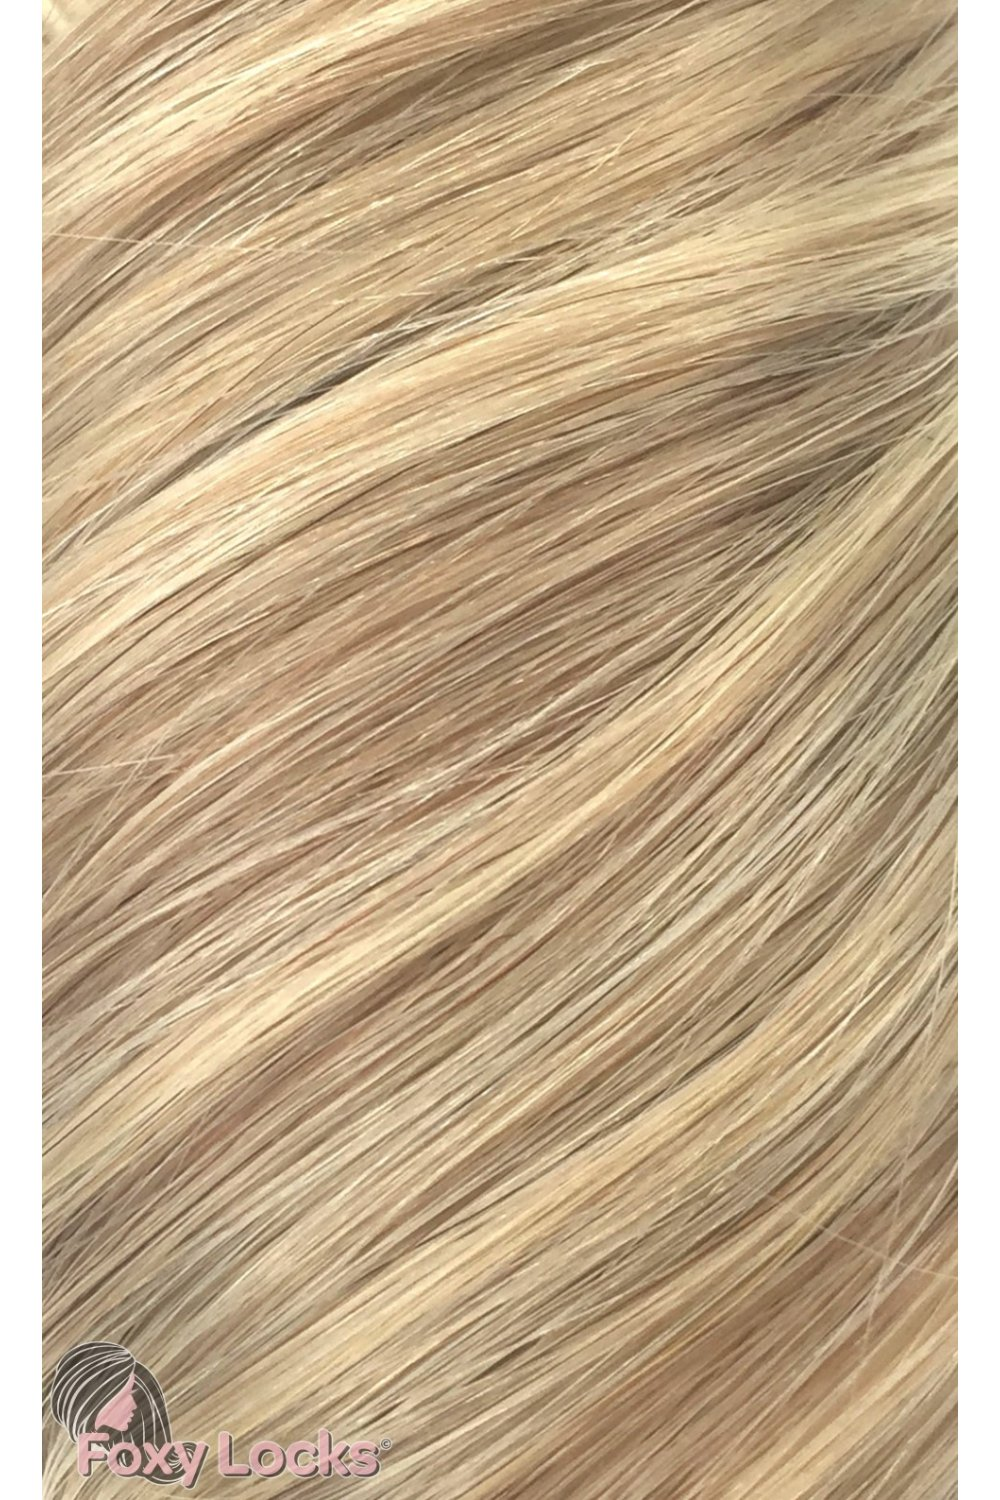 Latte Blonde Deluxe 20 Clip In Human Hair Extensions 165g